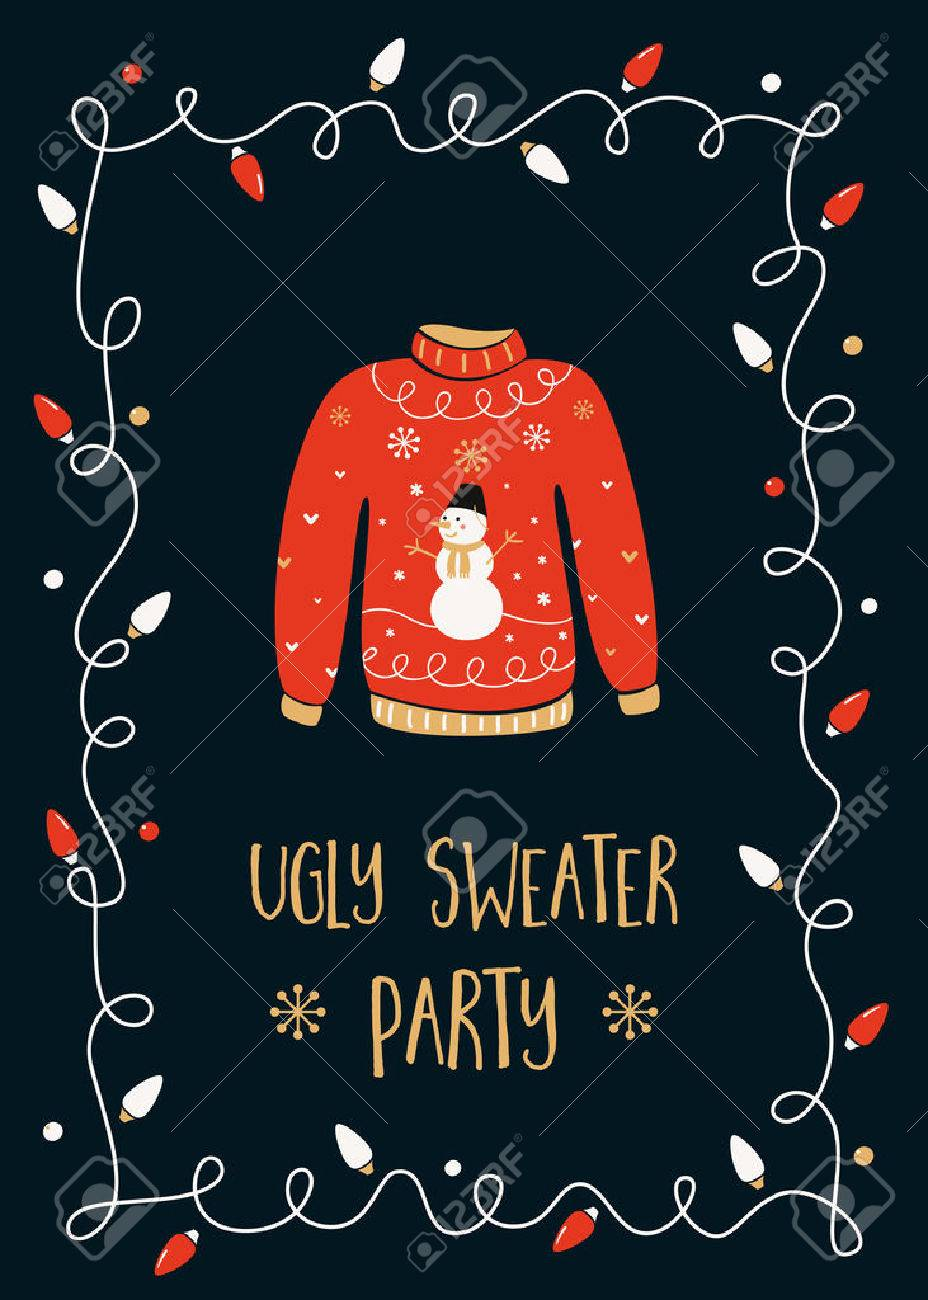 Ugly Sweater Christmas Party Invitation Card Template Royalty Free - Ugly sweater christmas party invitations template